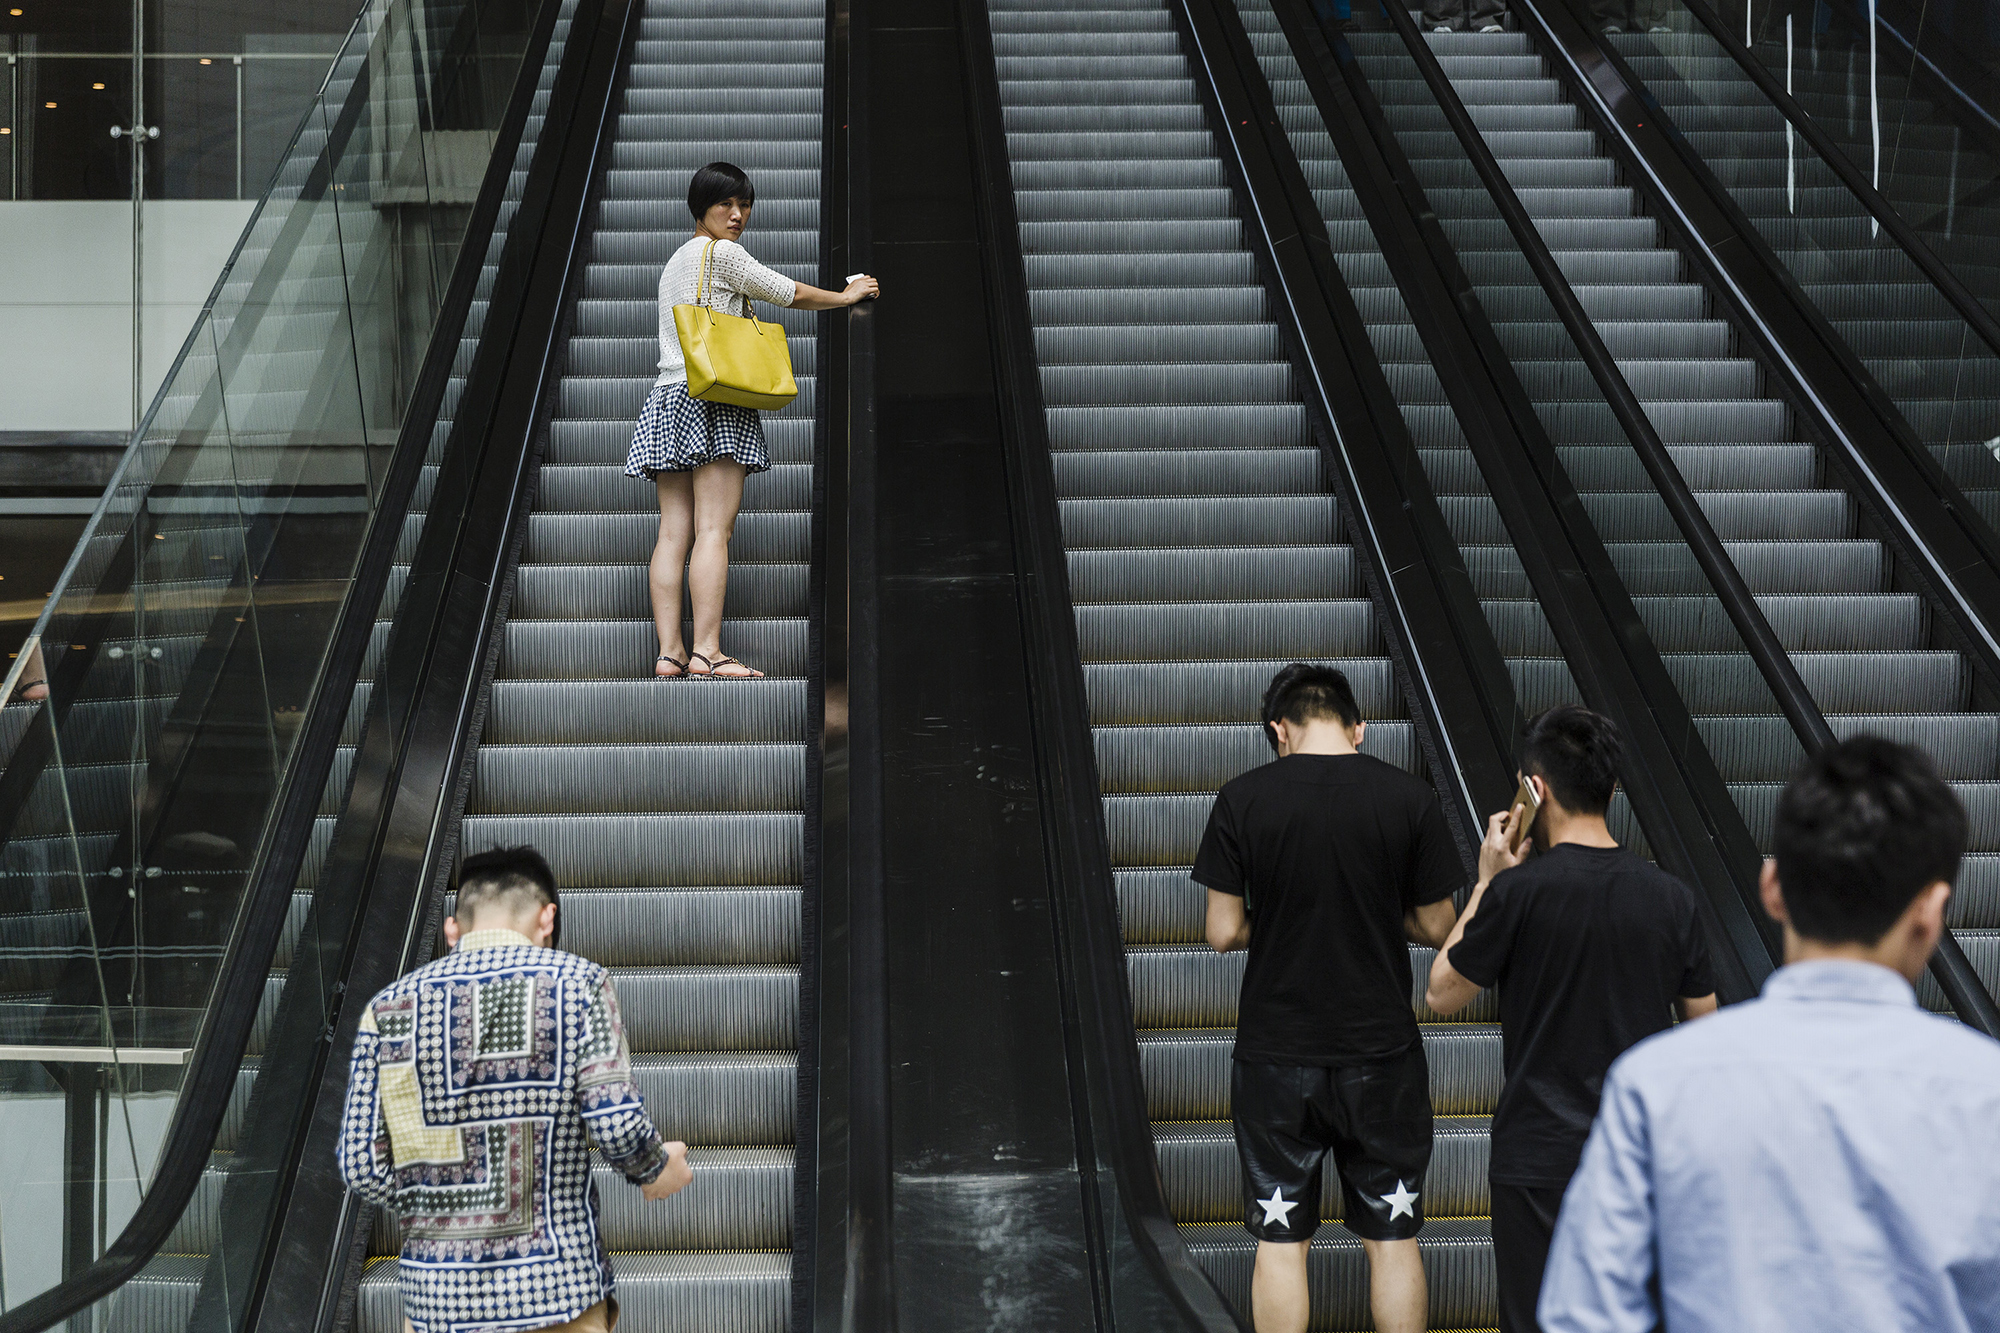 A woman glances at Puamap's students on an escalator in a shopping mall, May 15, 2015.